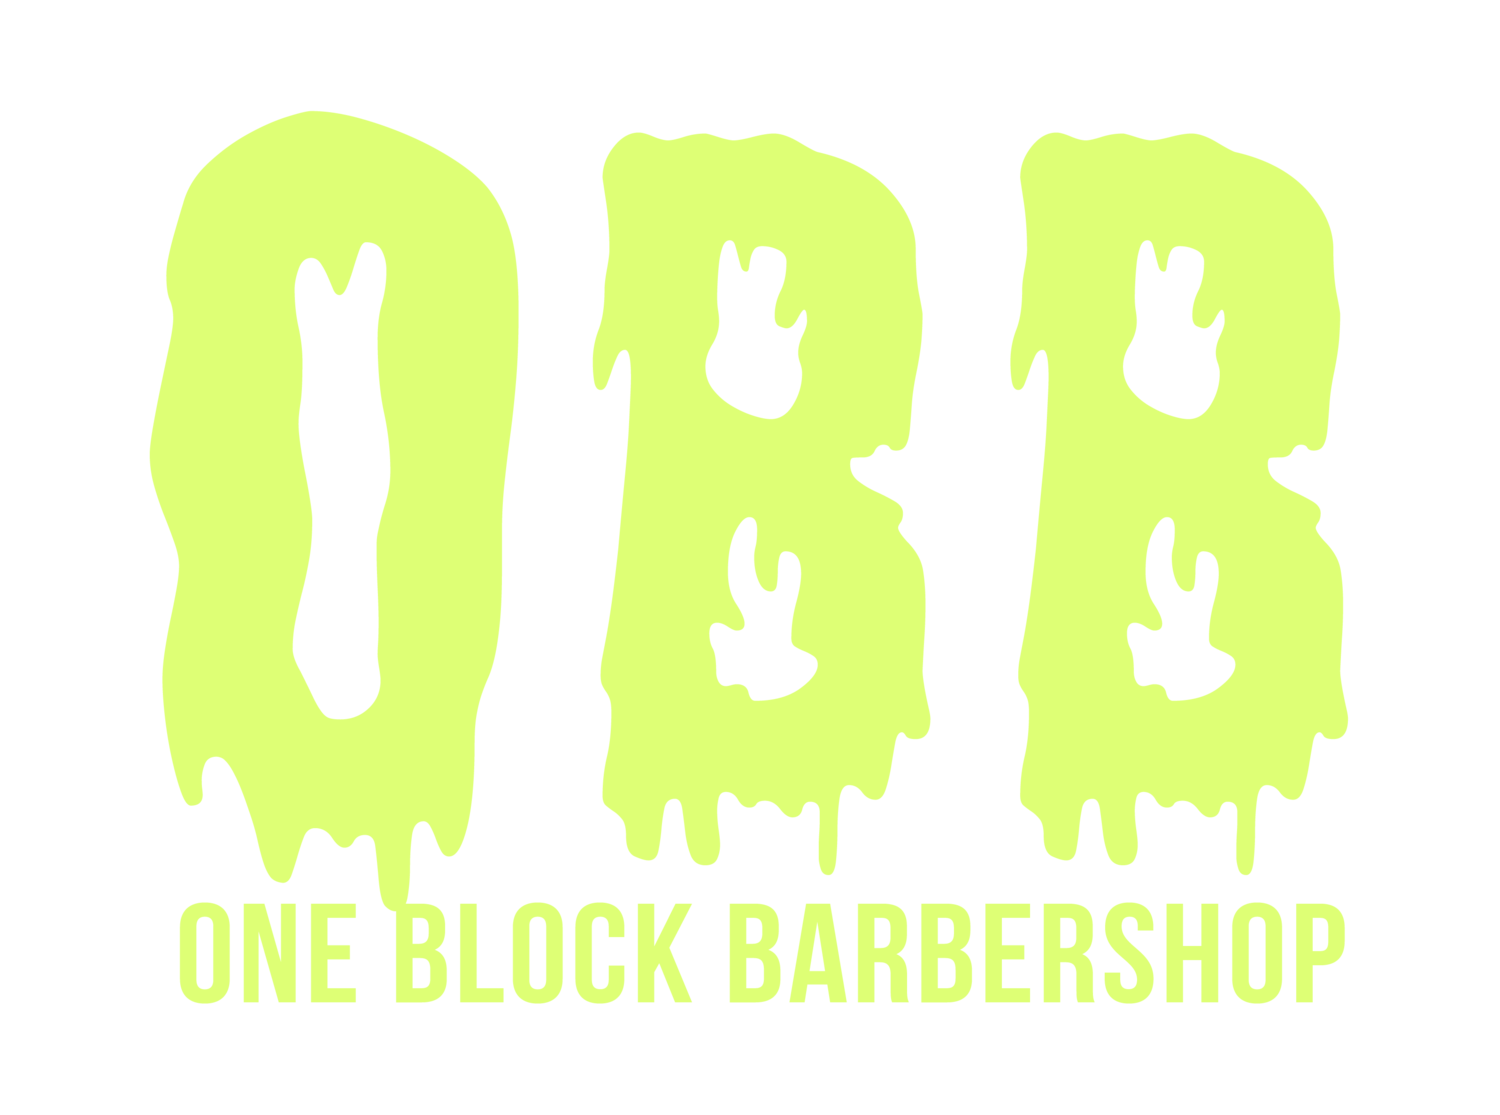 One Block Barbershop